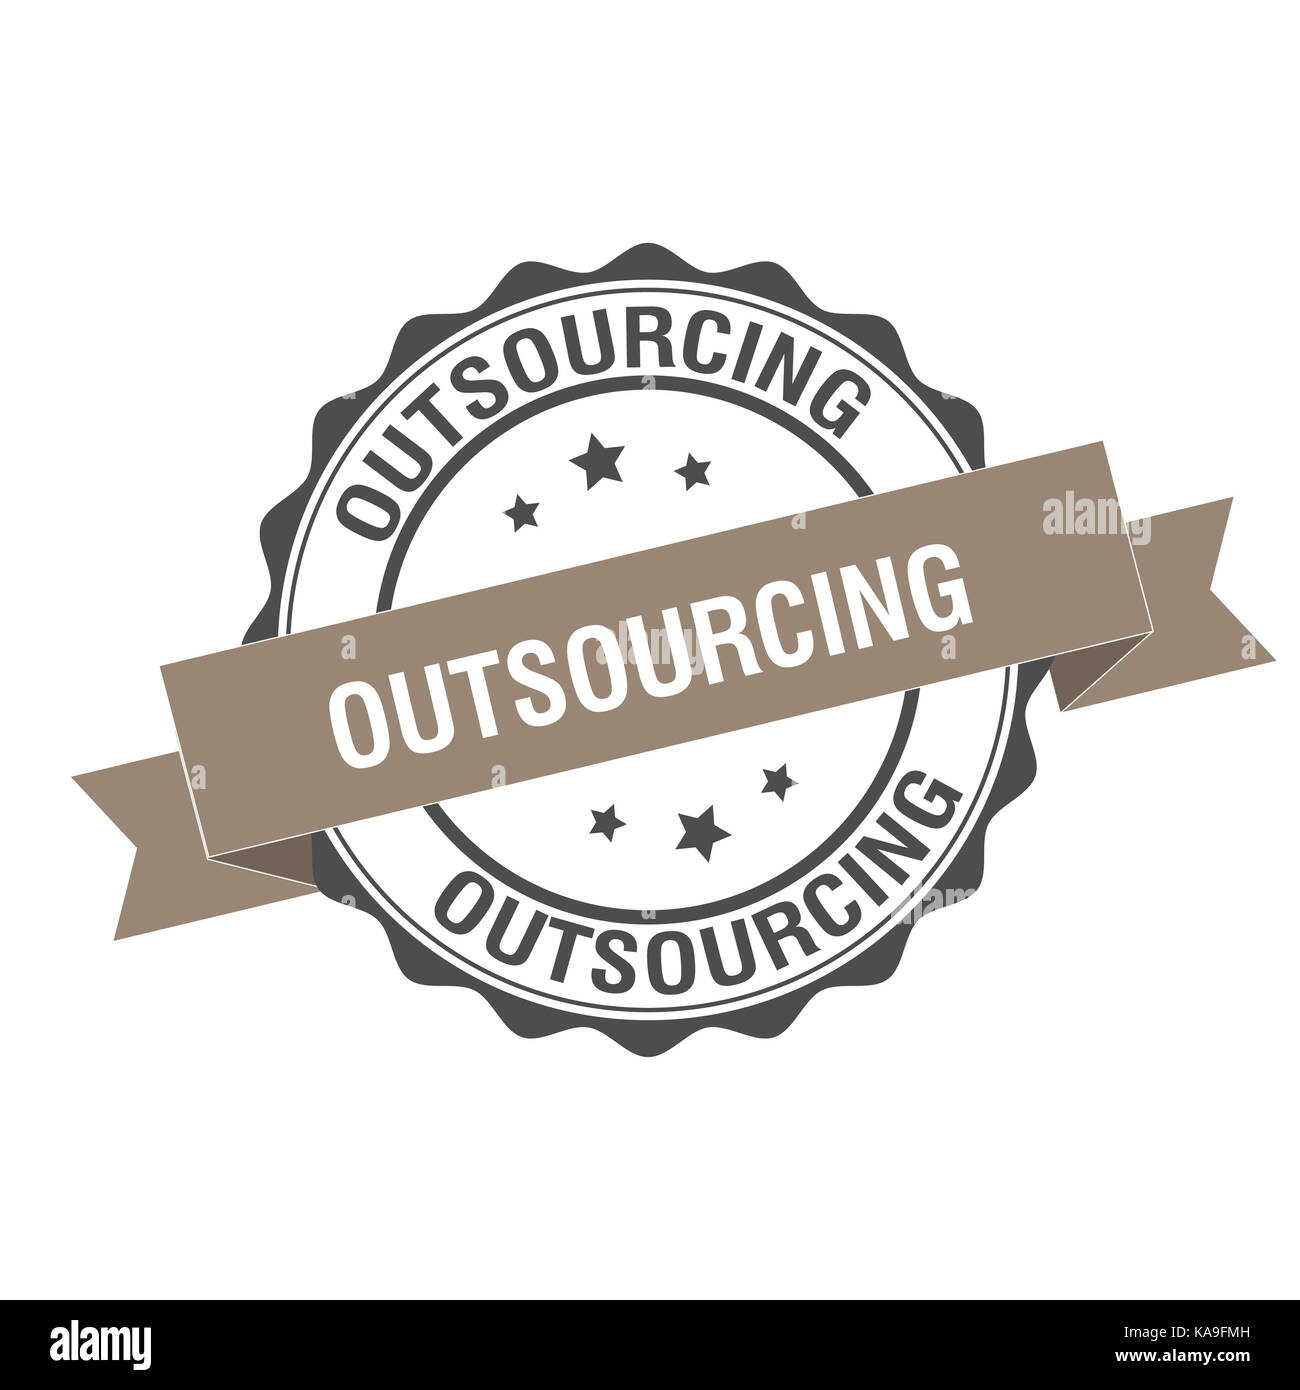 Outsourcing stamp illustration Stock Photo